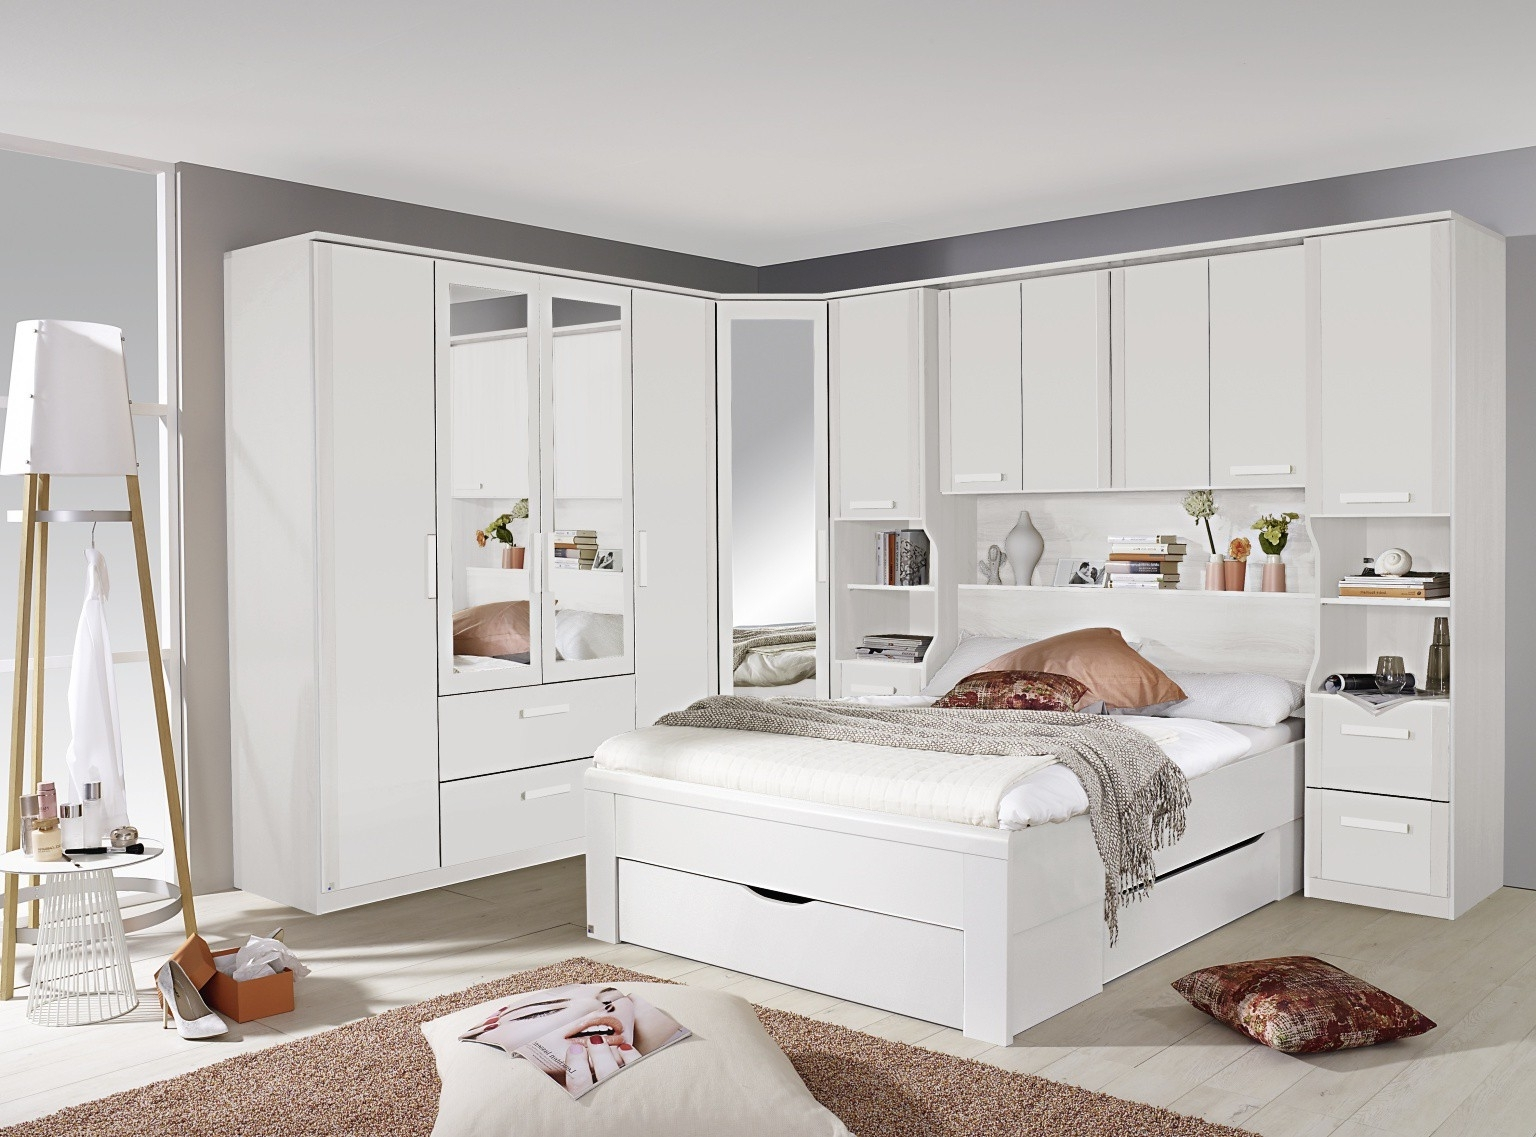 Trendy White Overbed Wardrobe Systems, Fitted Bedroom Furniture Regarding Overbed Wardrobes (View 15 of 15)